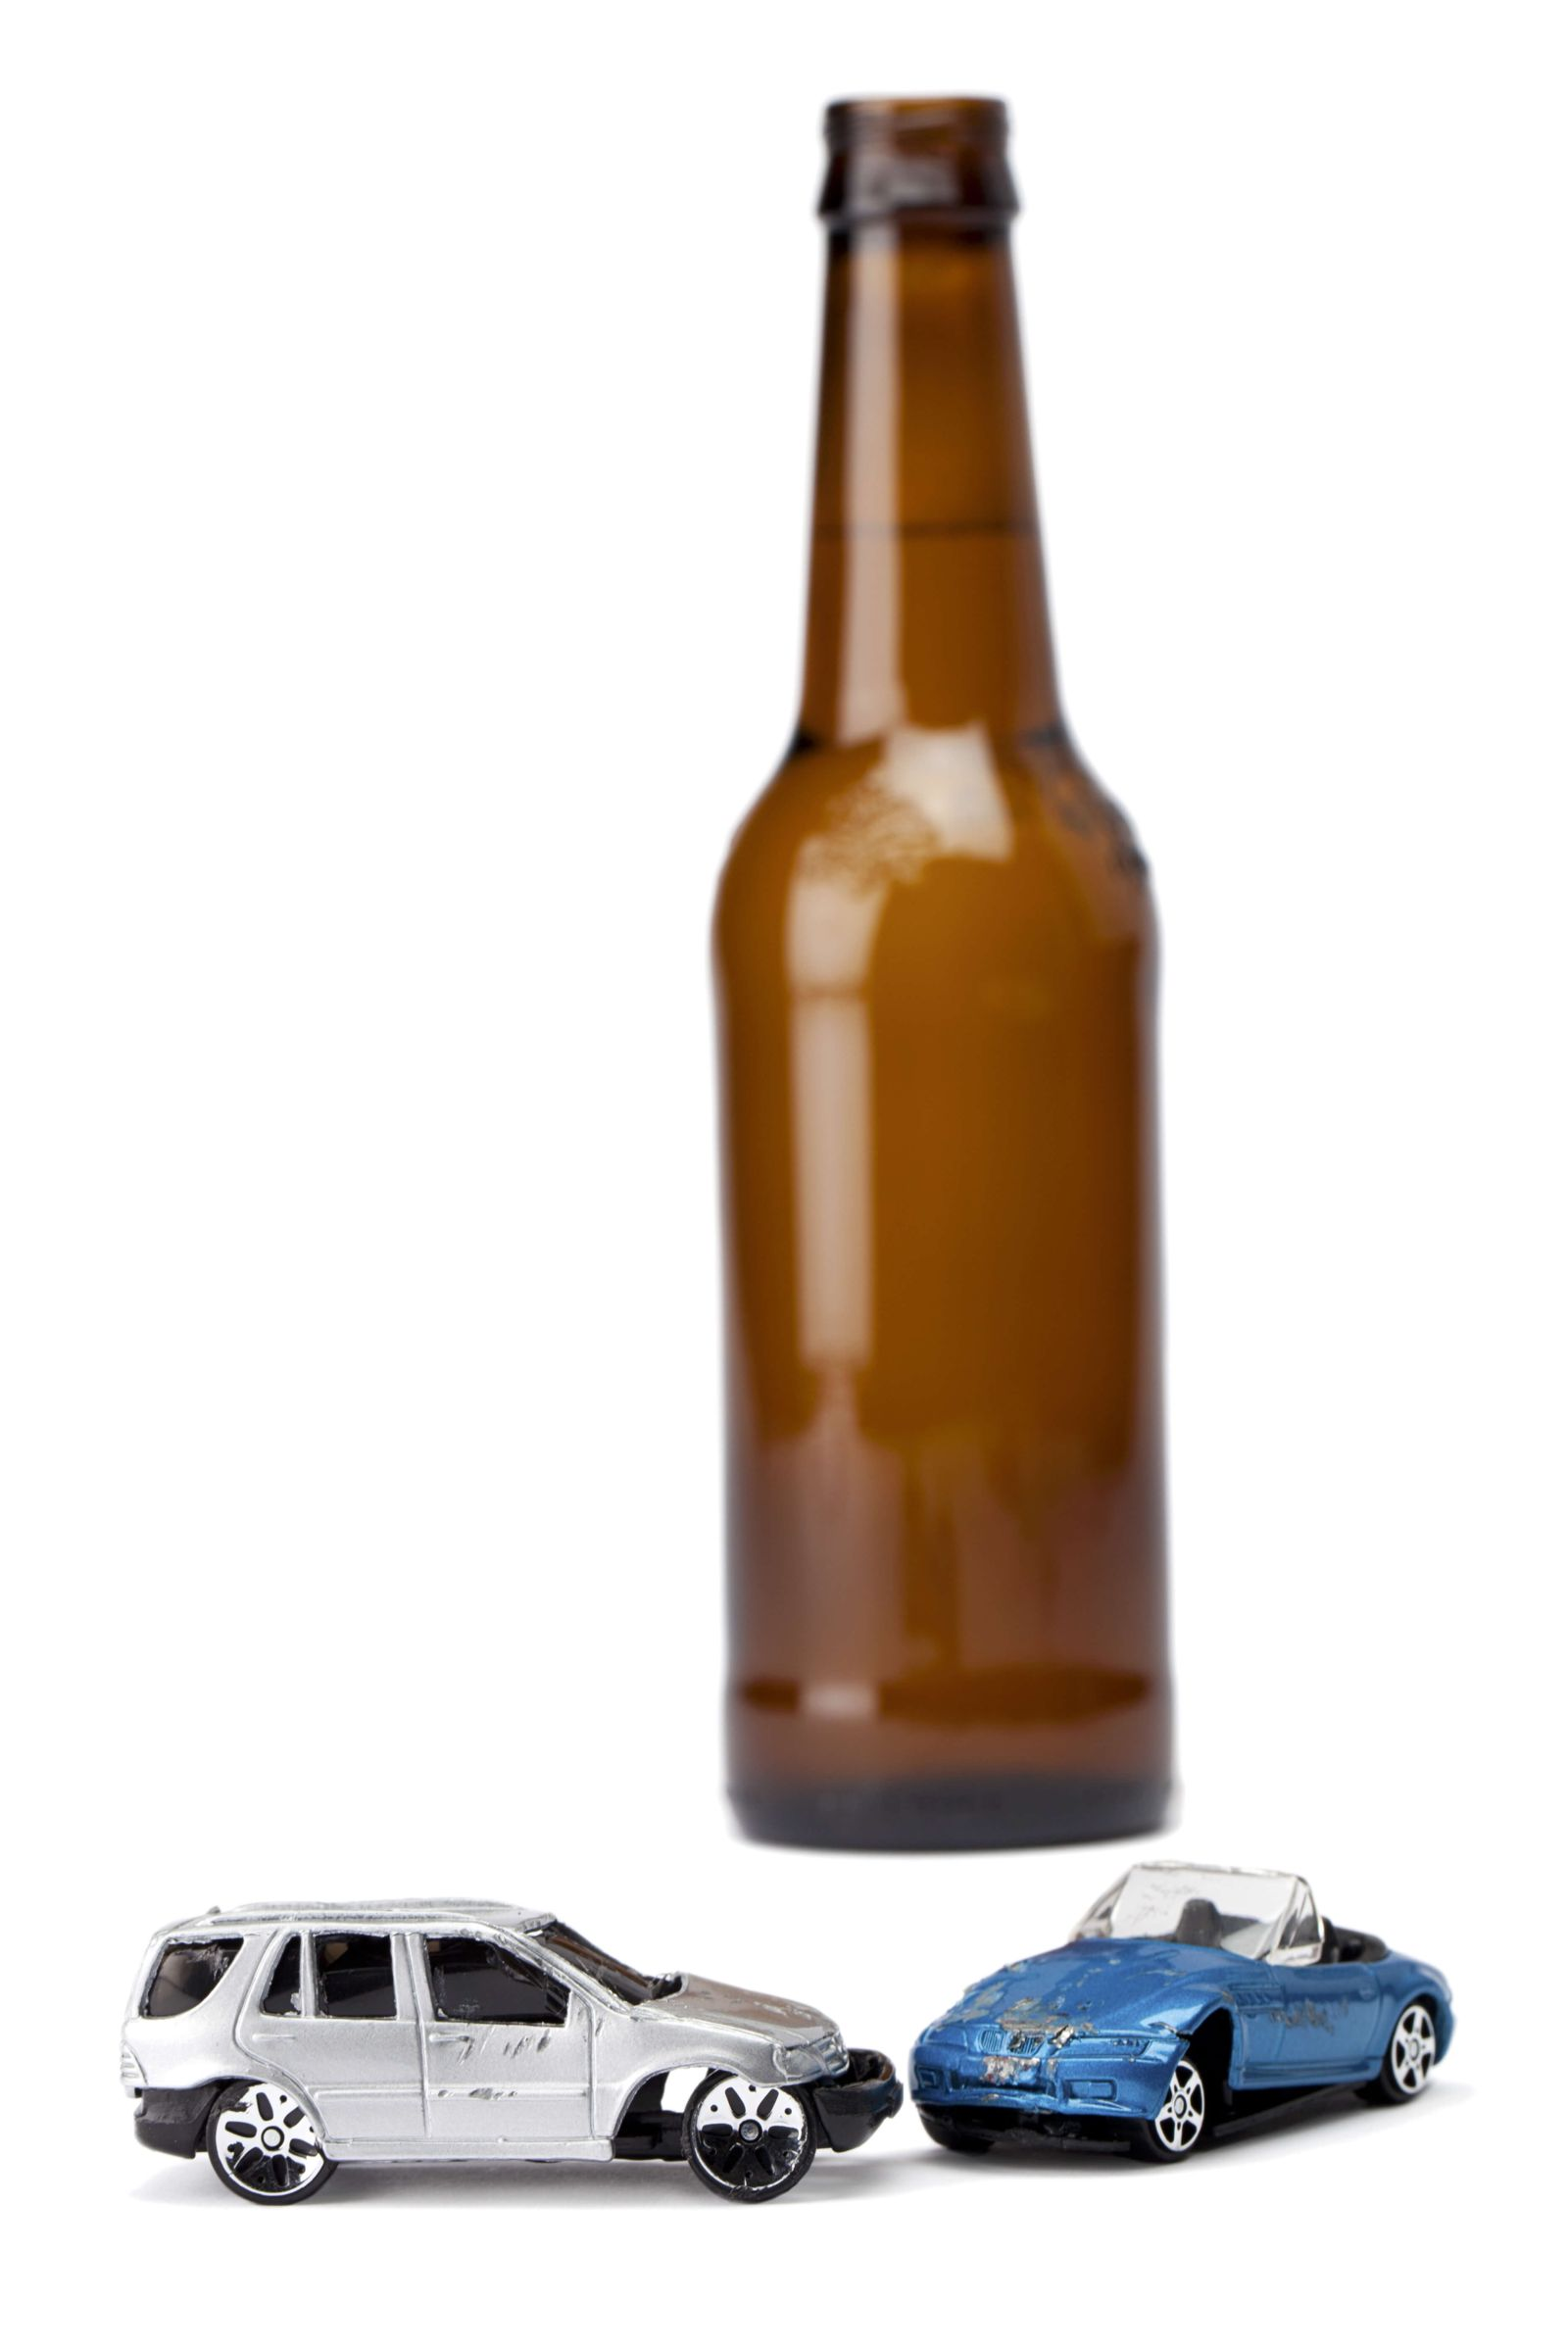 Reasons To Hire A Lawyer Following A DUI Wreck The Hart Law Firm